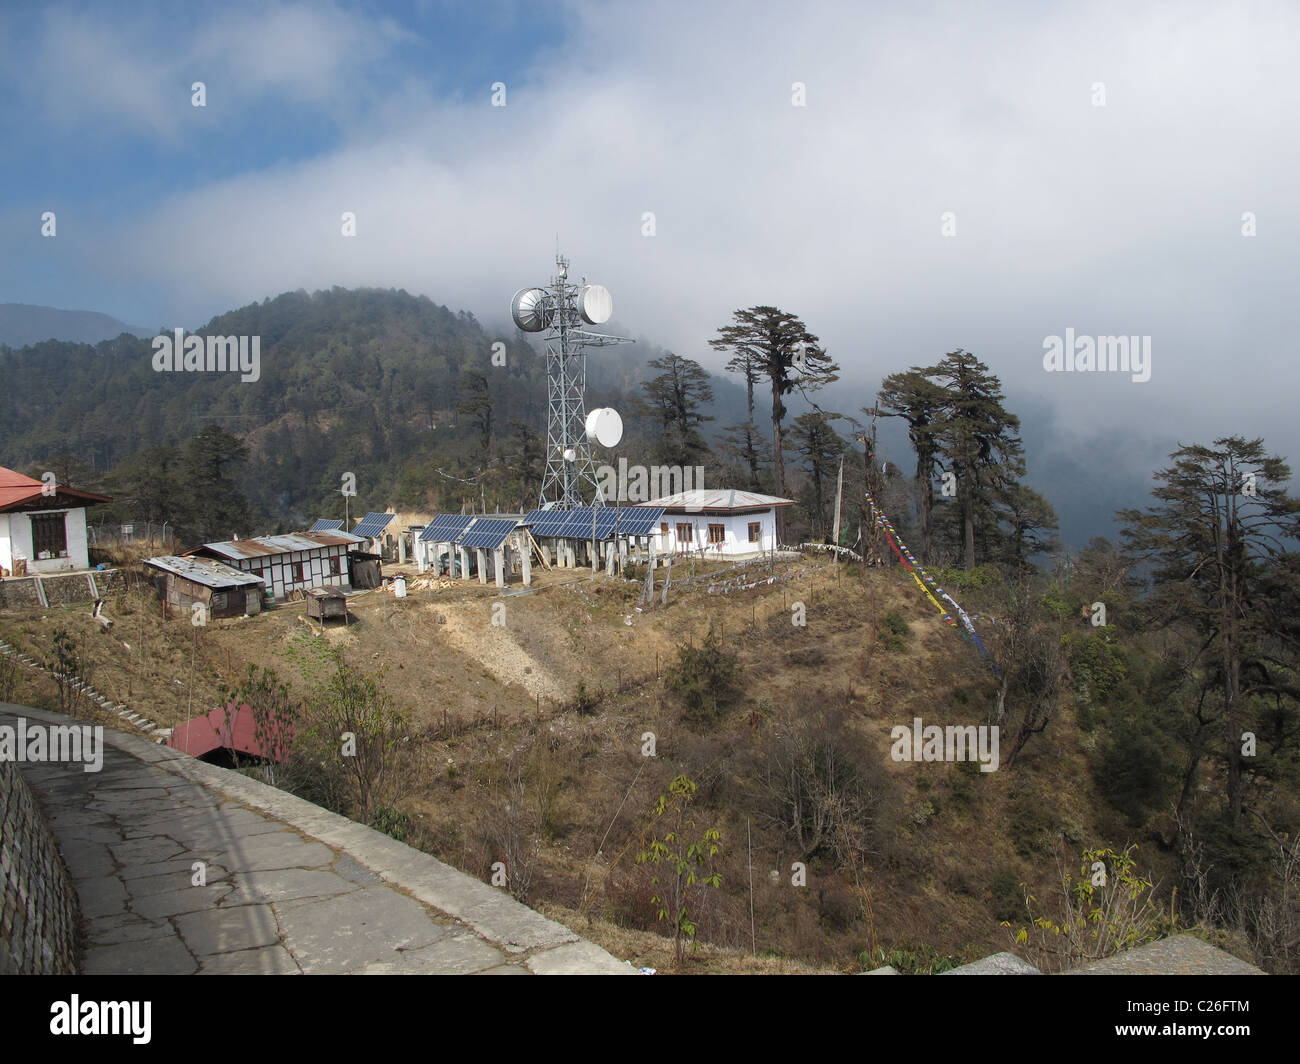 Photo-voltaic systems and telecommunication antennas, Dochula Pass, Bhutan - Stock Image